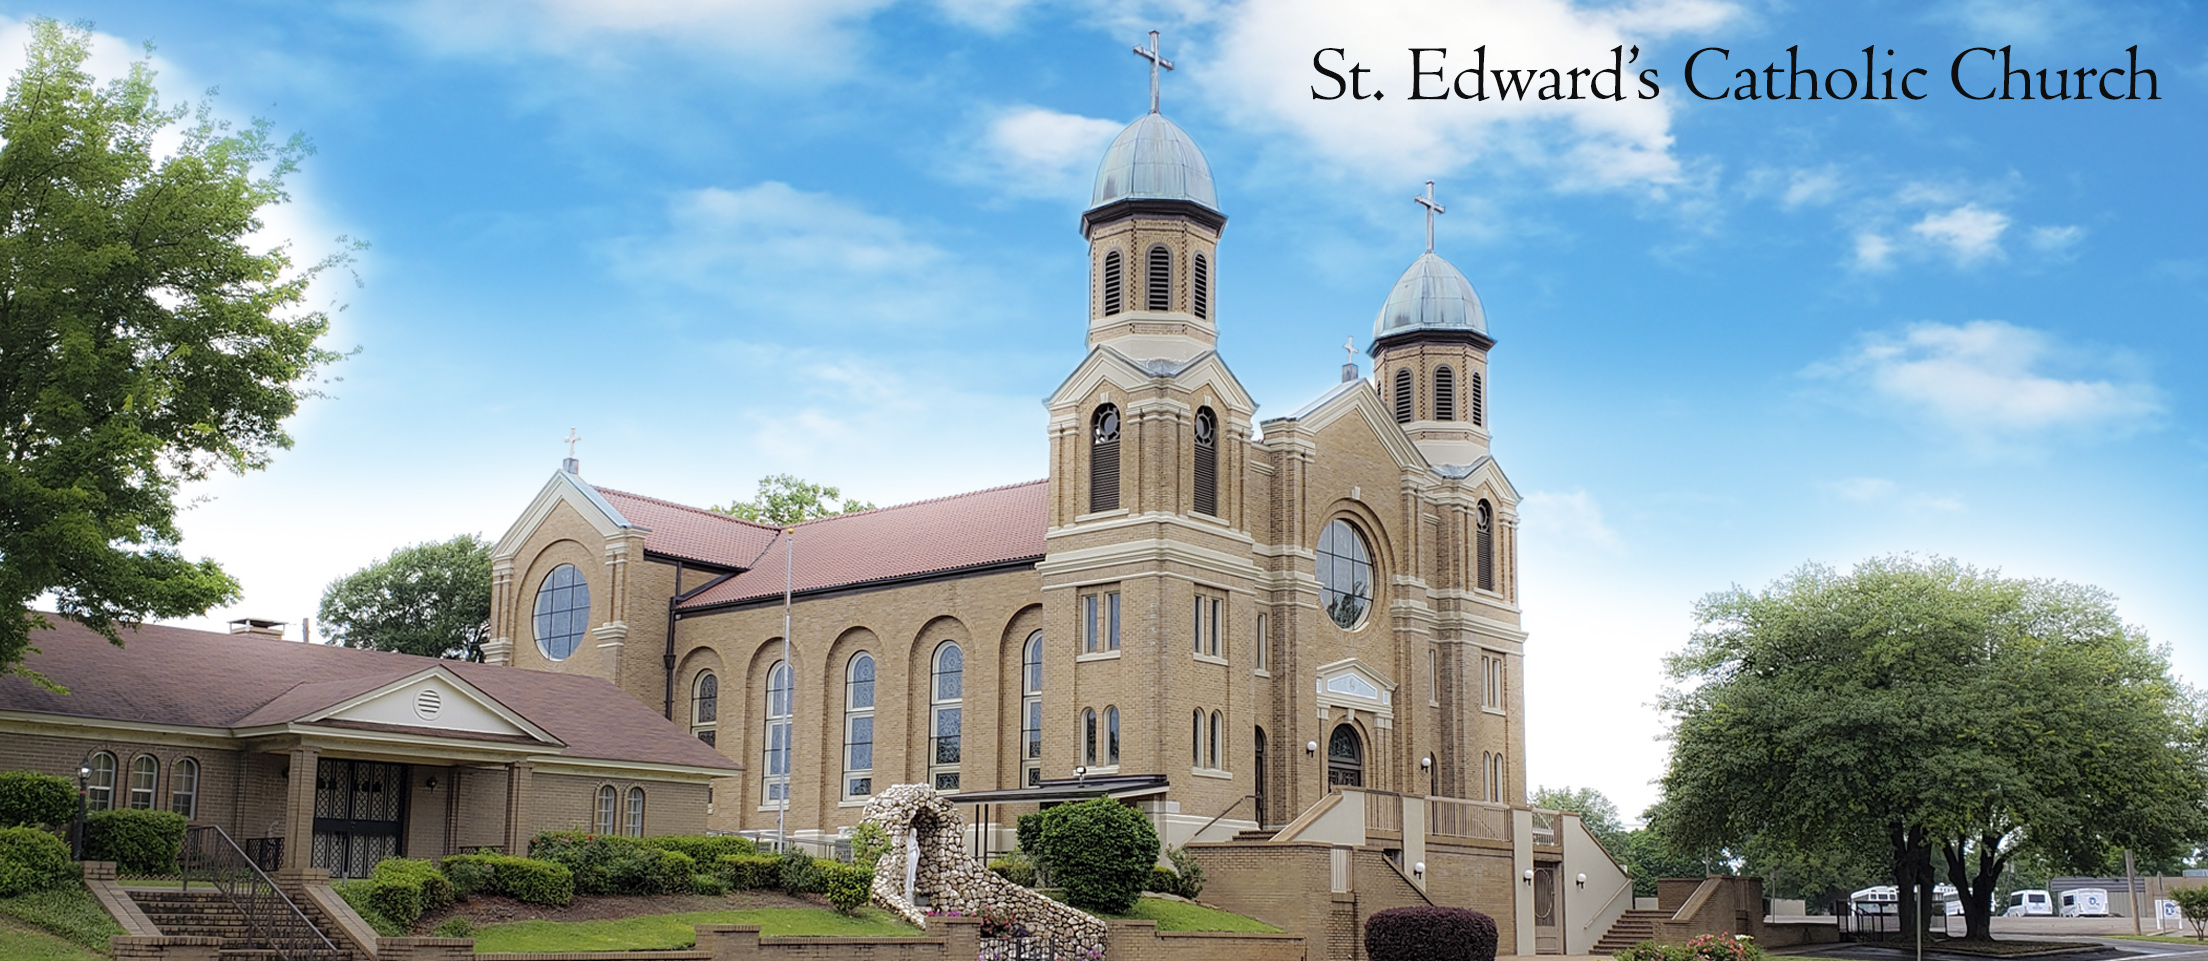 Welcome to St. Edward's Catholic Church